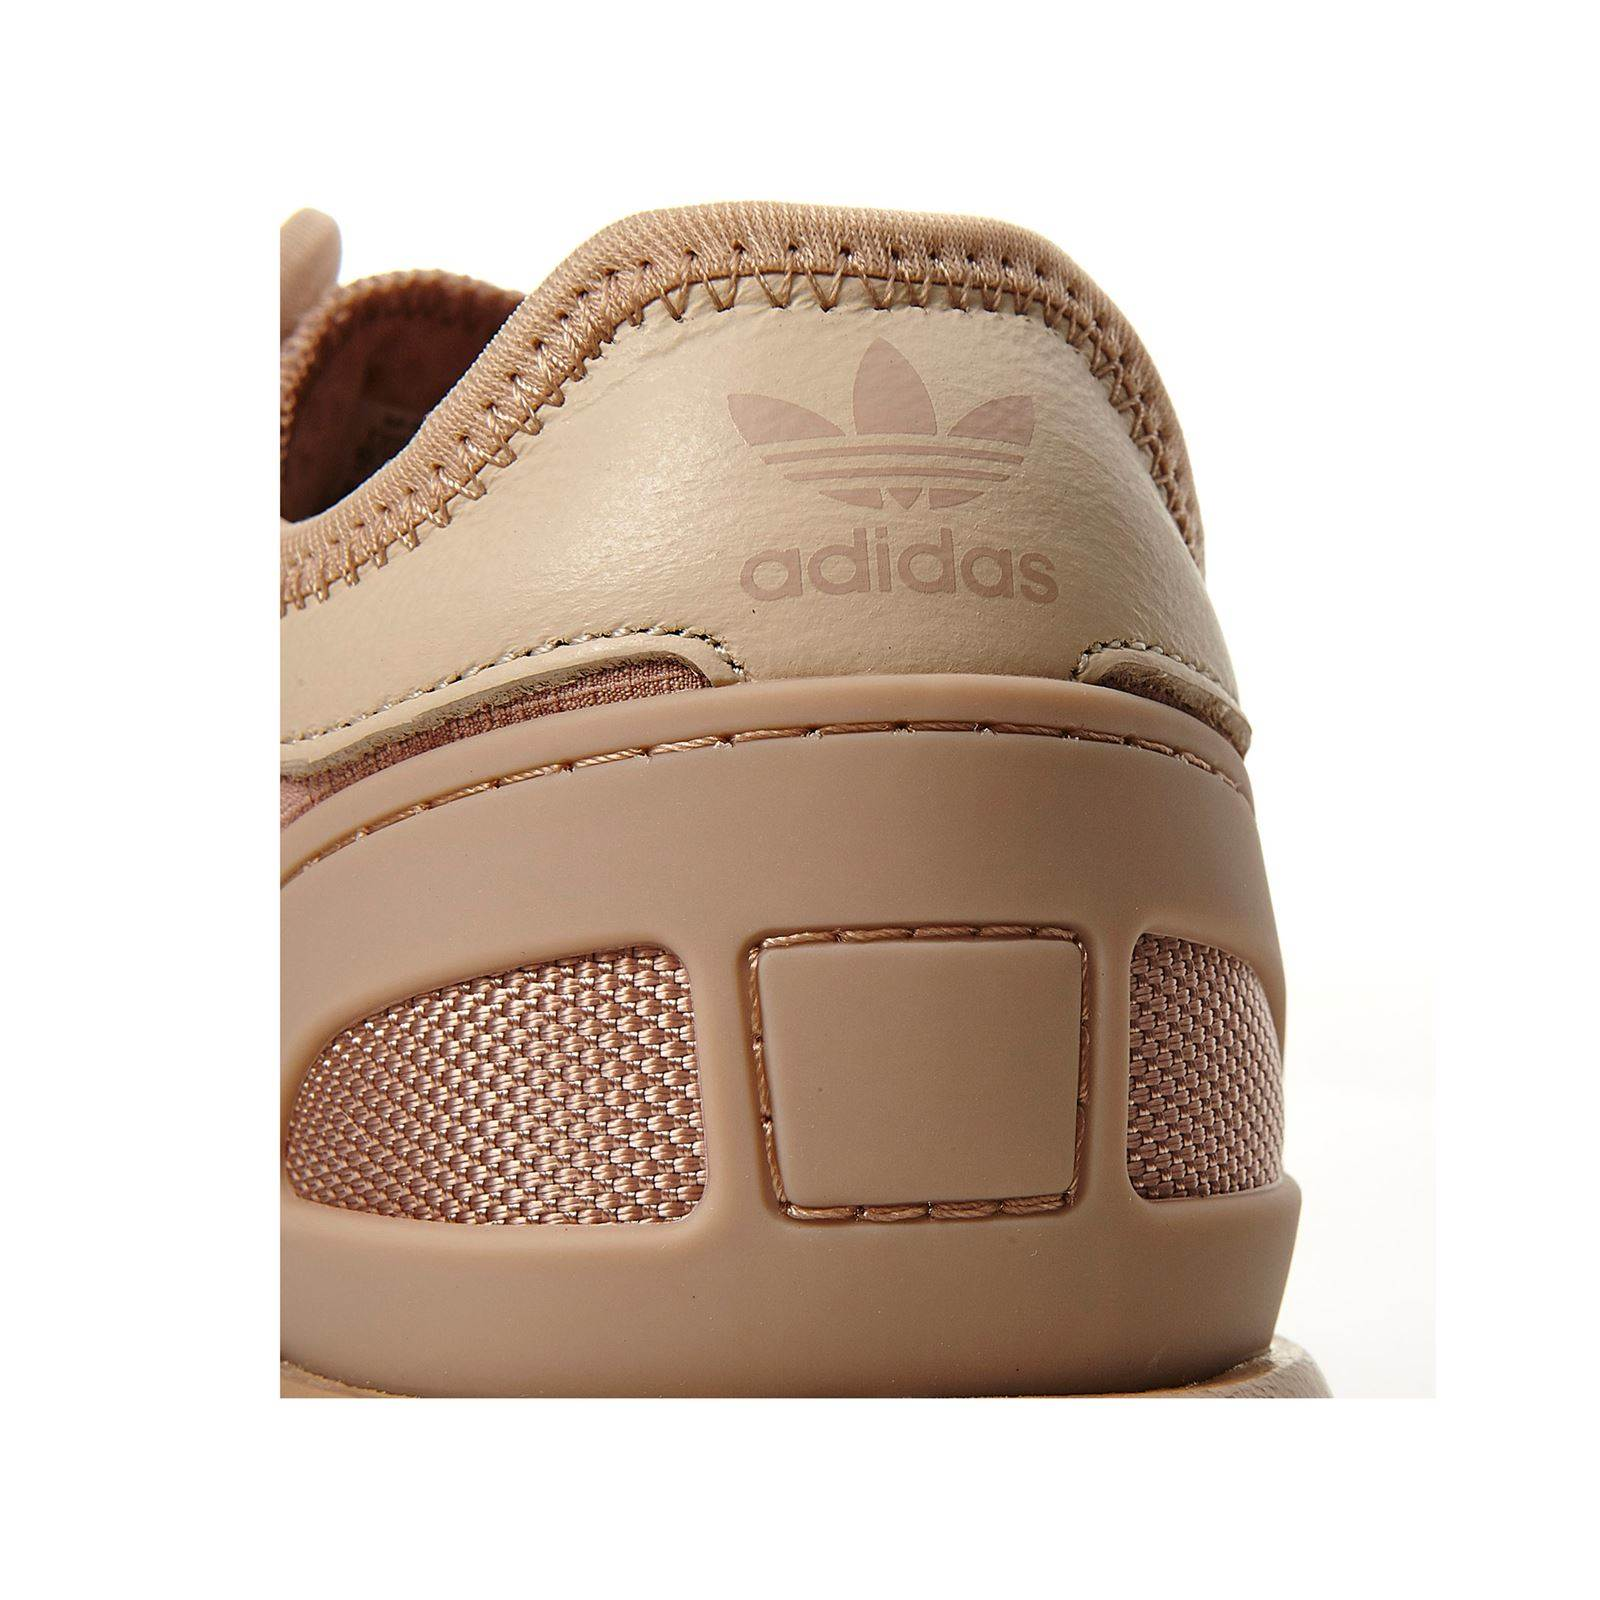 Adidas Bettwäsche Adidas Originals N 5923 Sneakers Leinen Brandalley